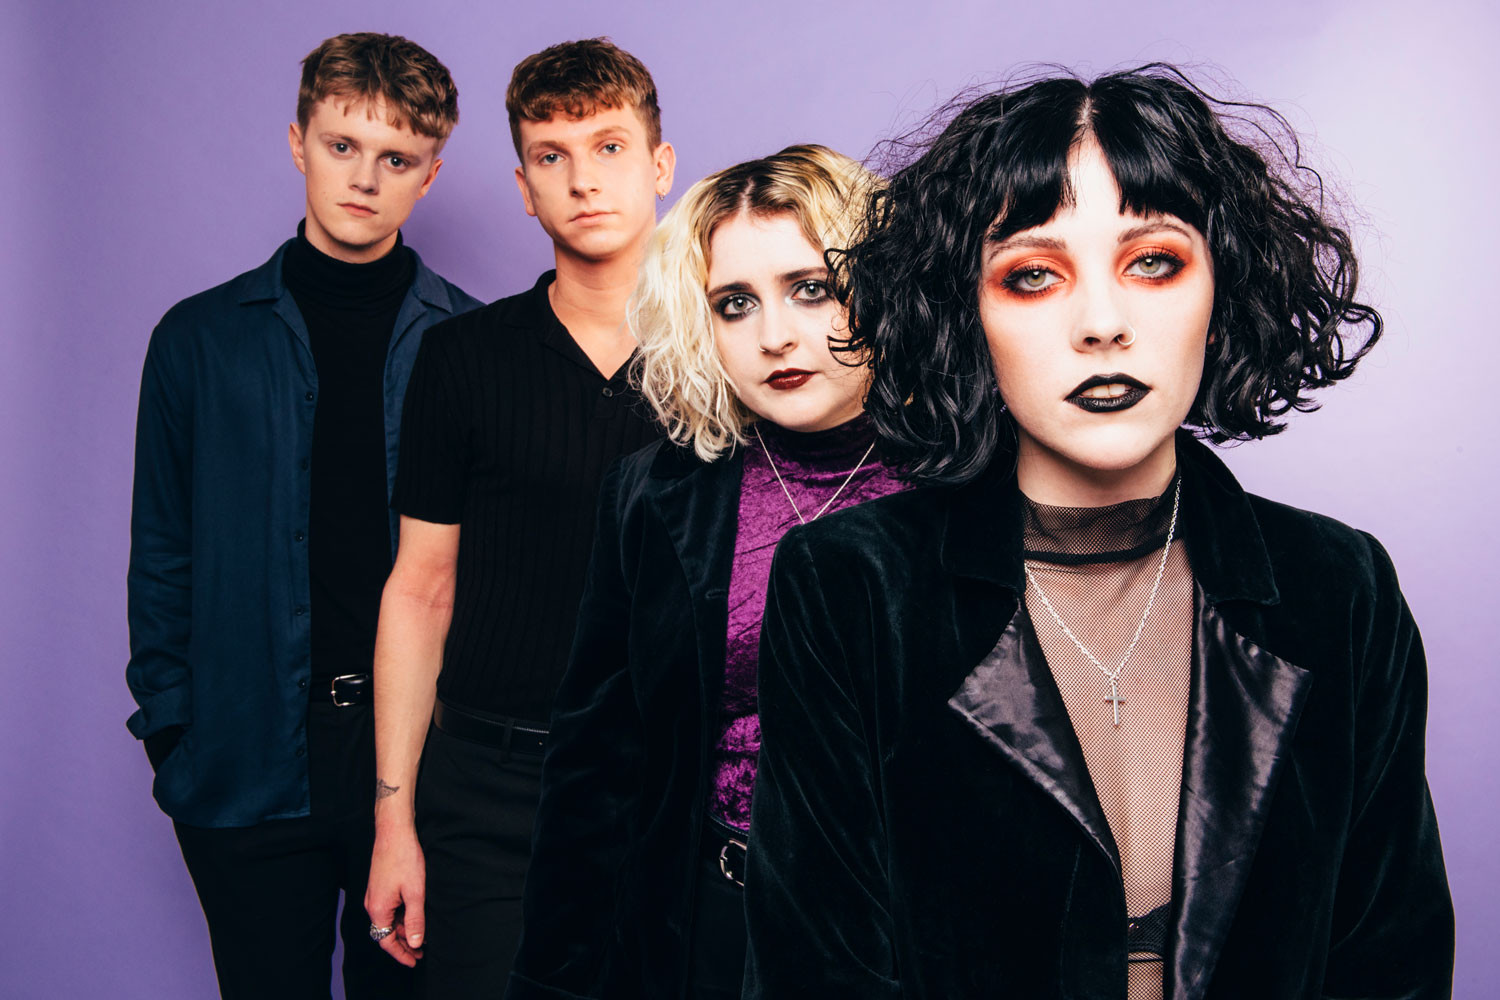 New music from Pale Waves